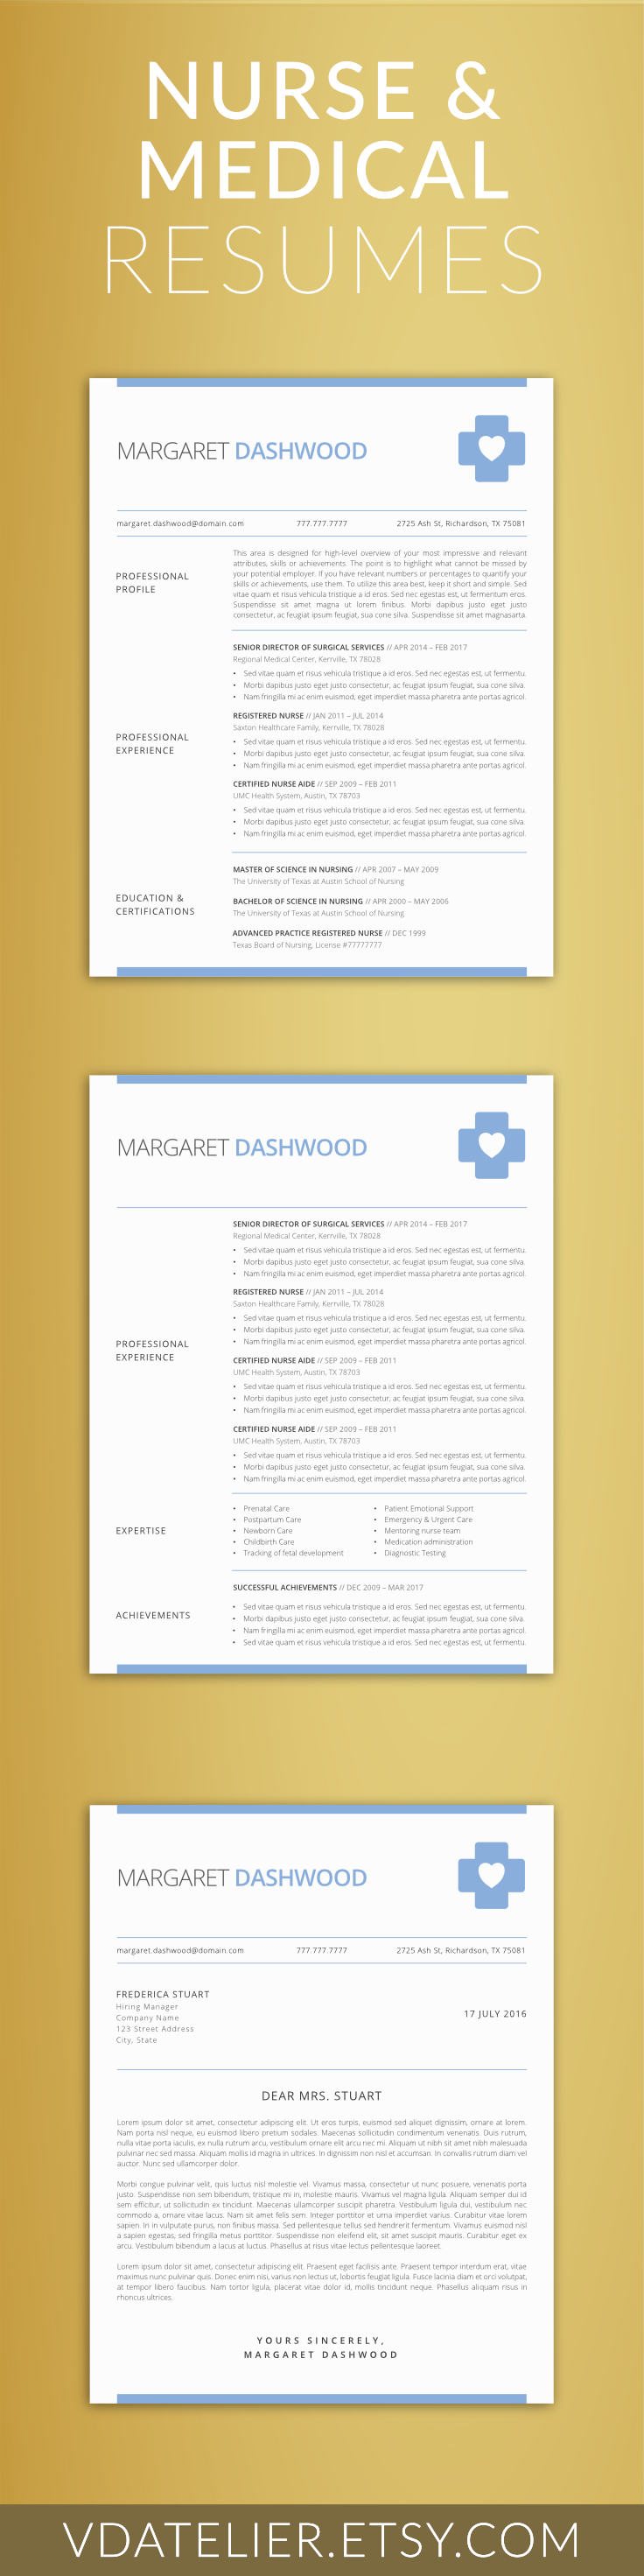 nurse resume template 5 pages